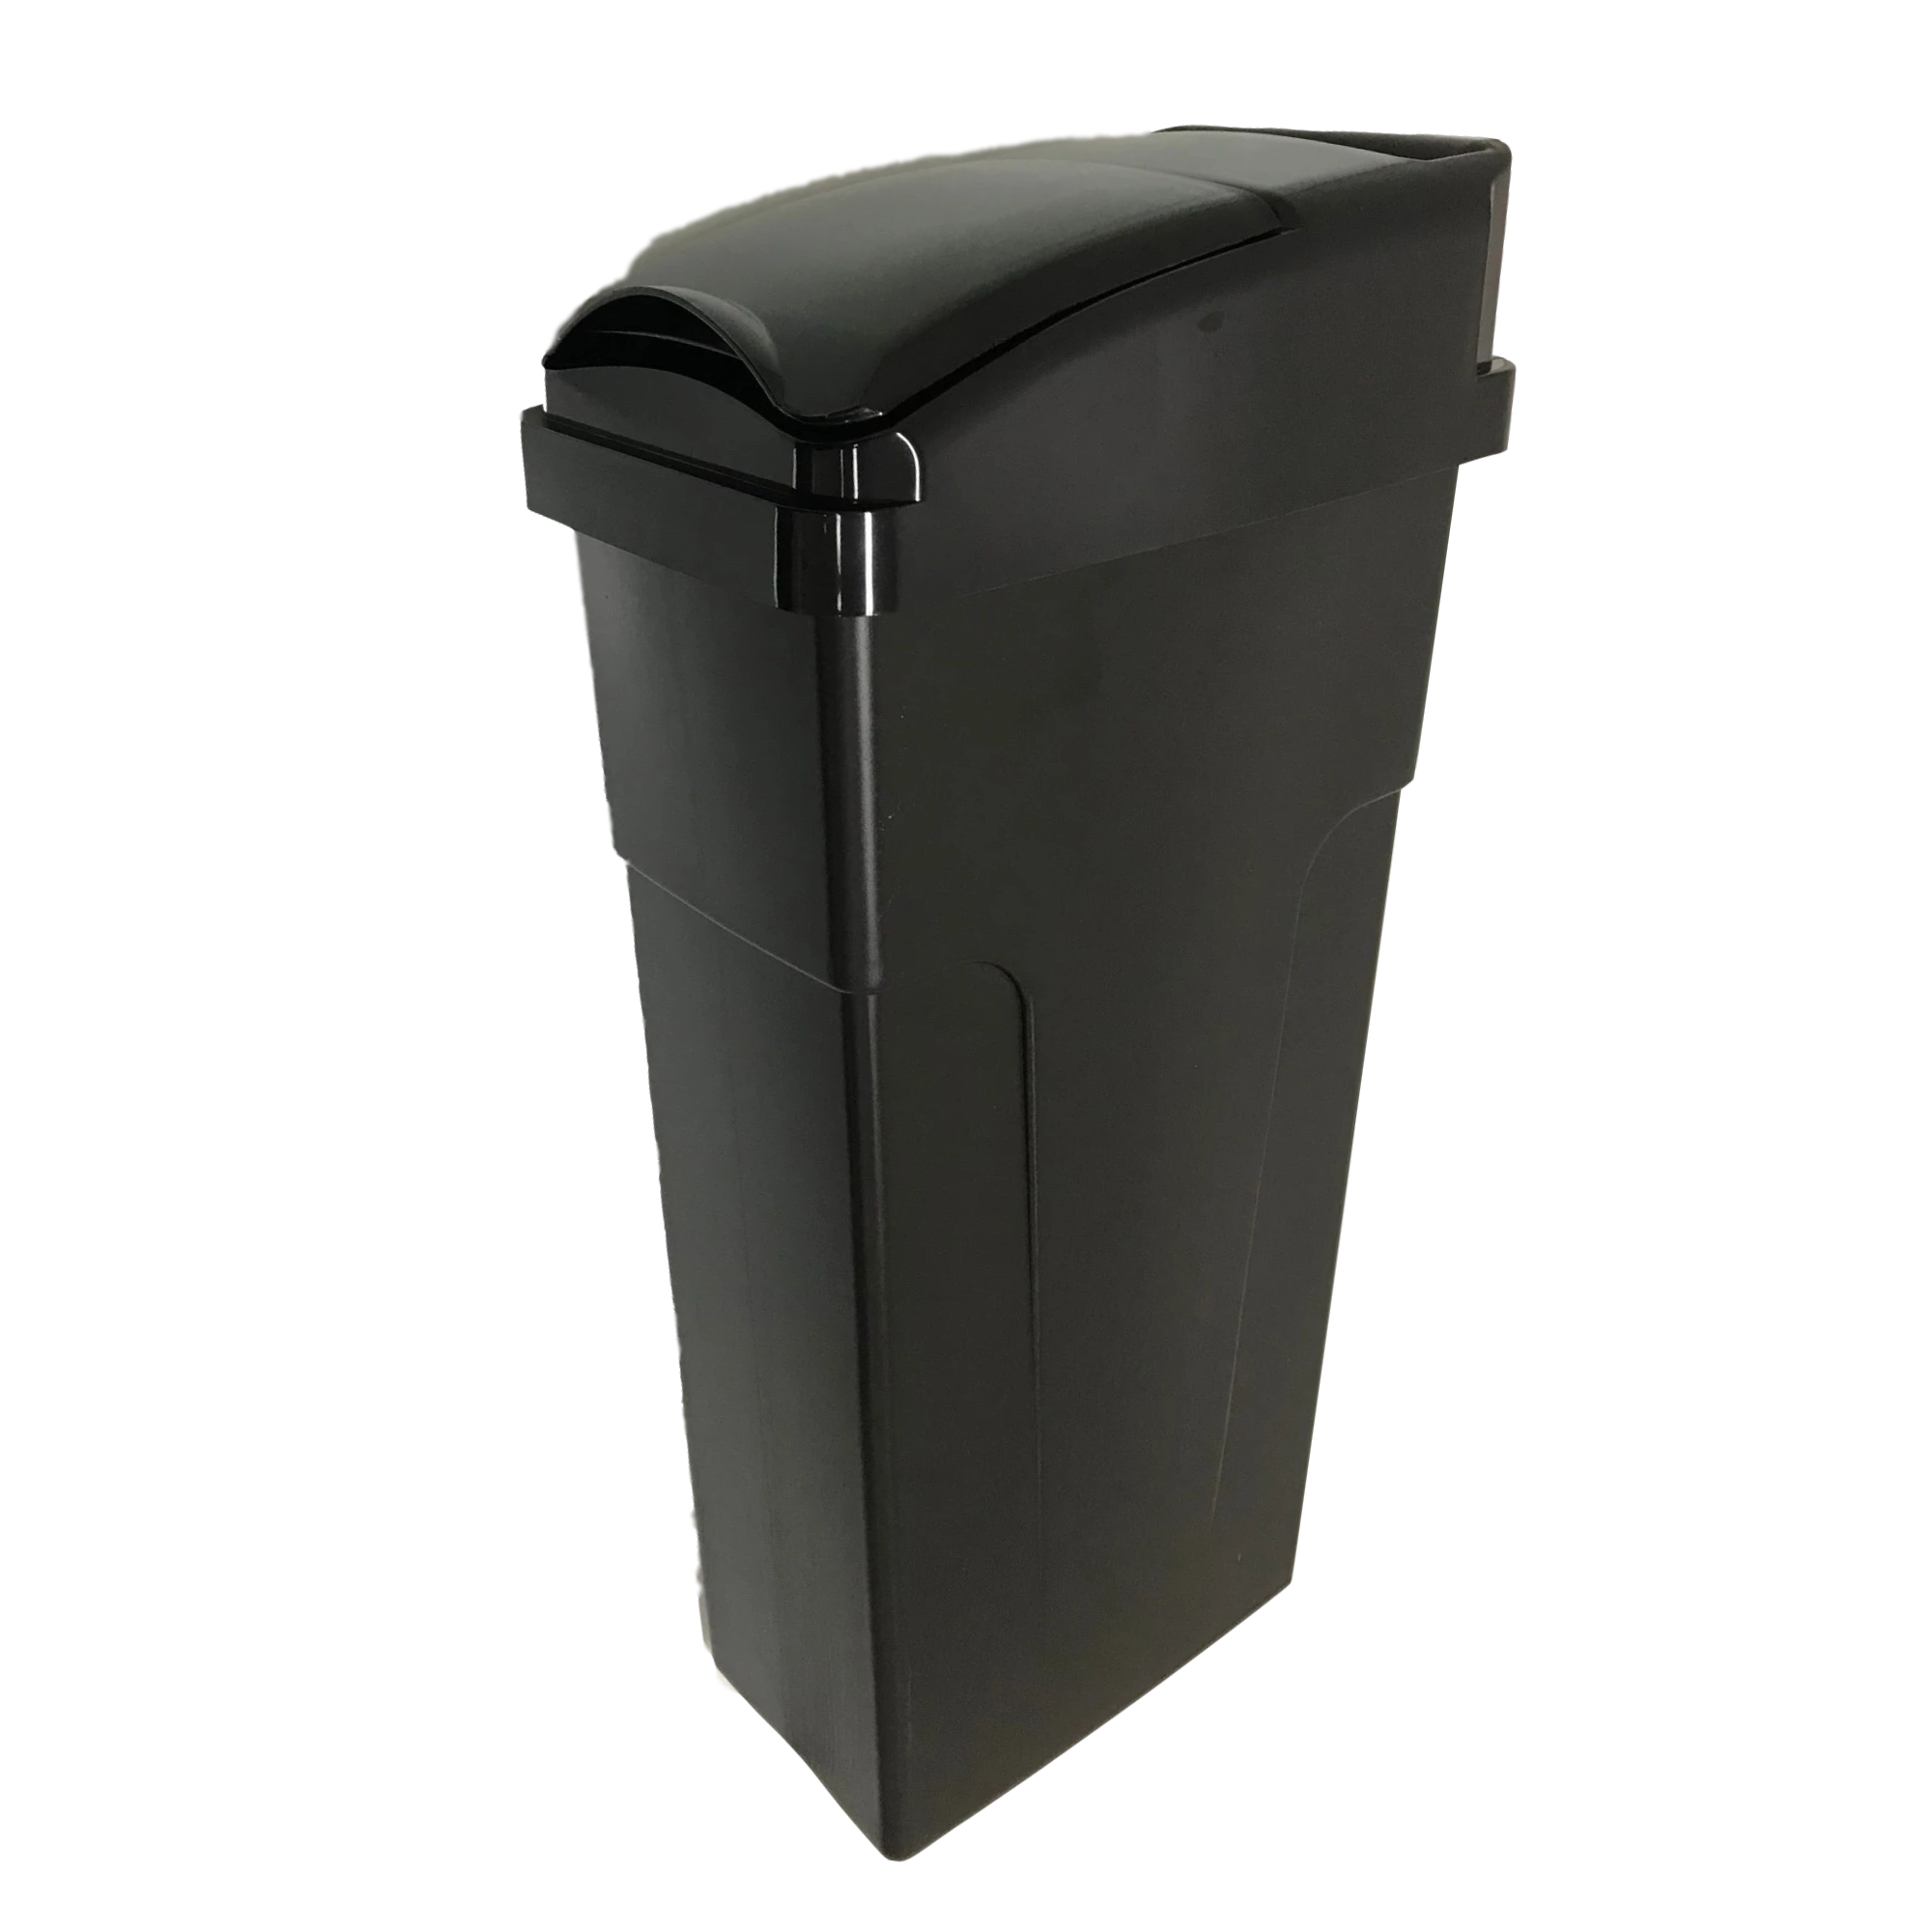 SB002 Bathroom Plastic Hygiene Female Lady Sanitary Bin Disposal 23L Black Nappy Trash Bin